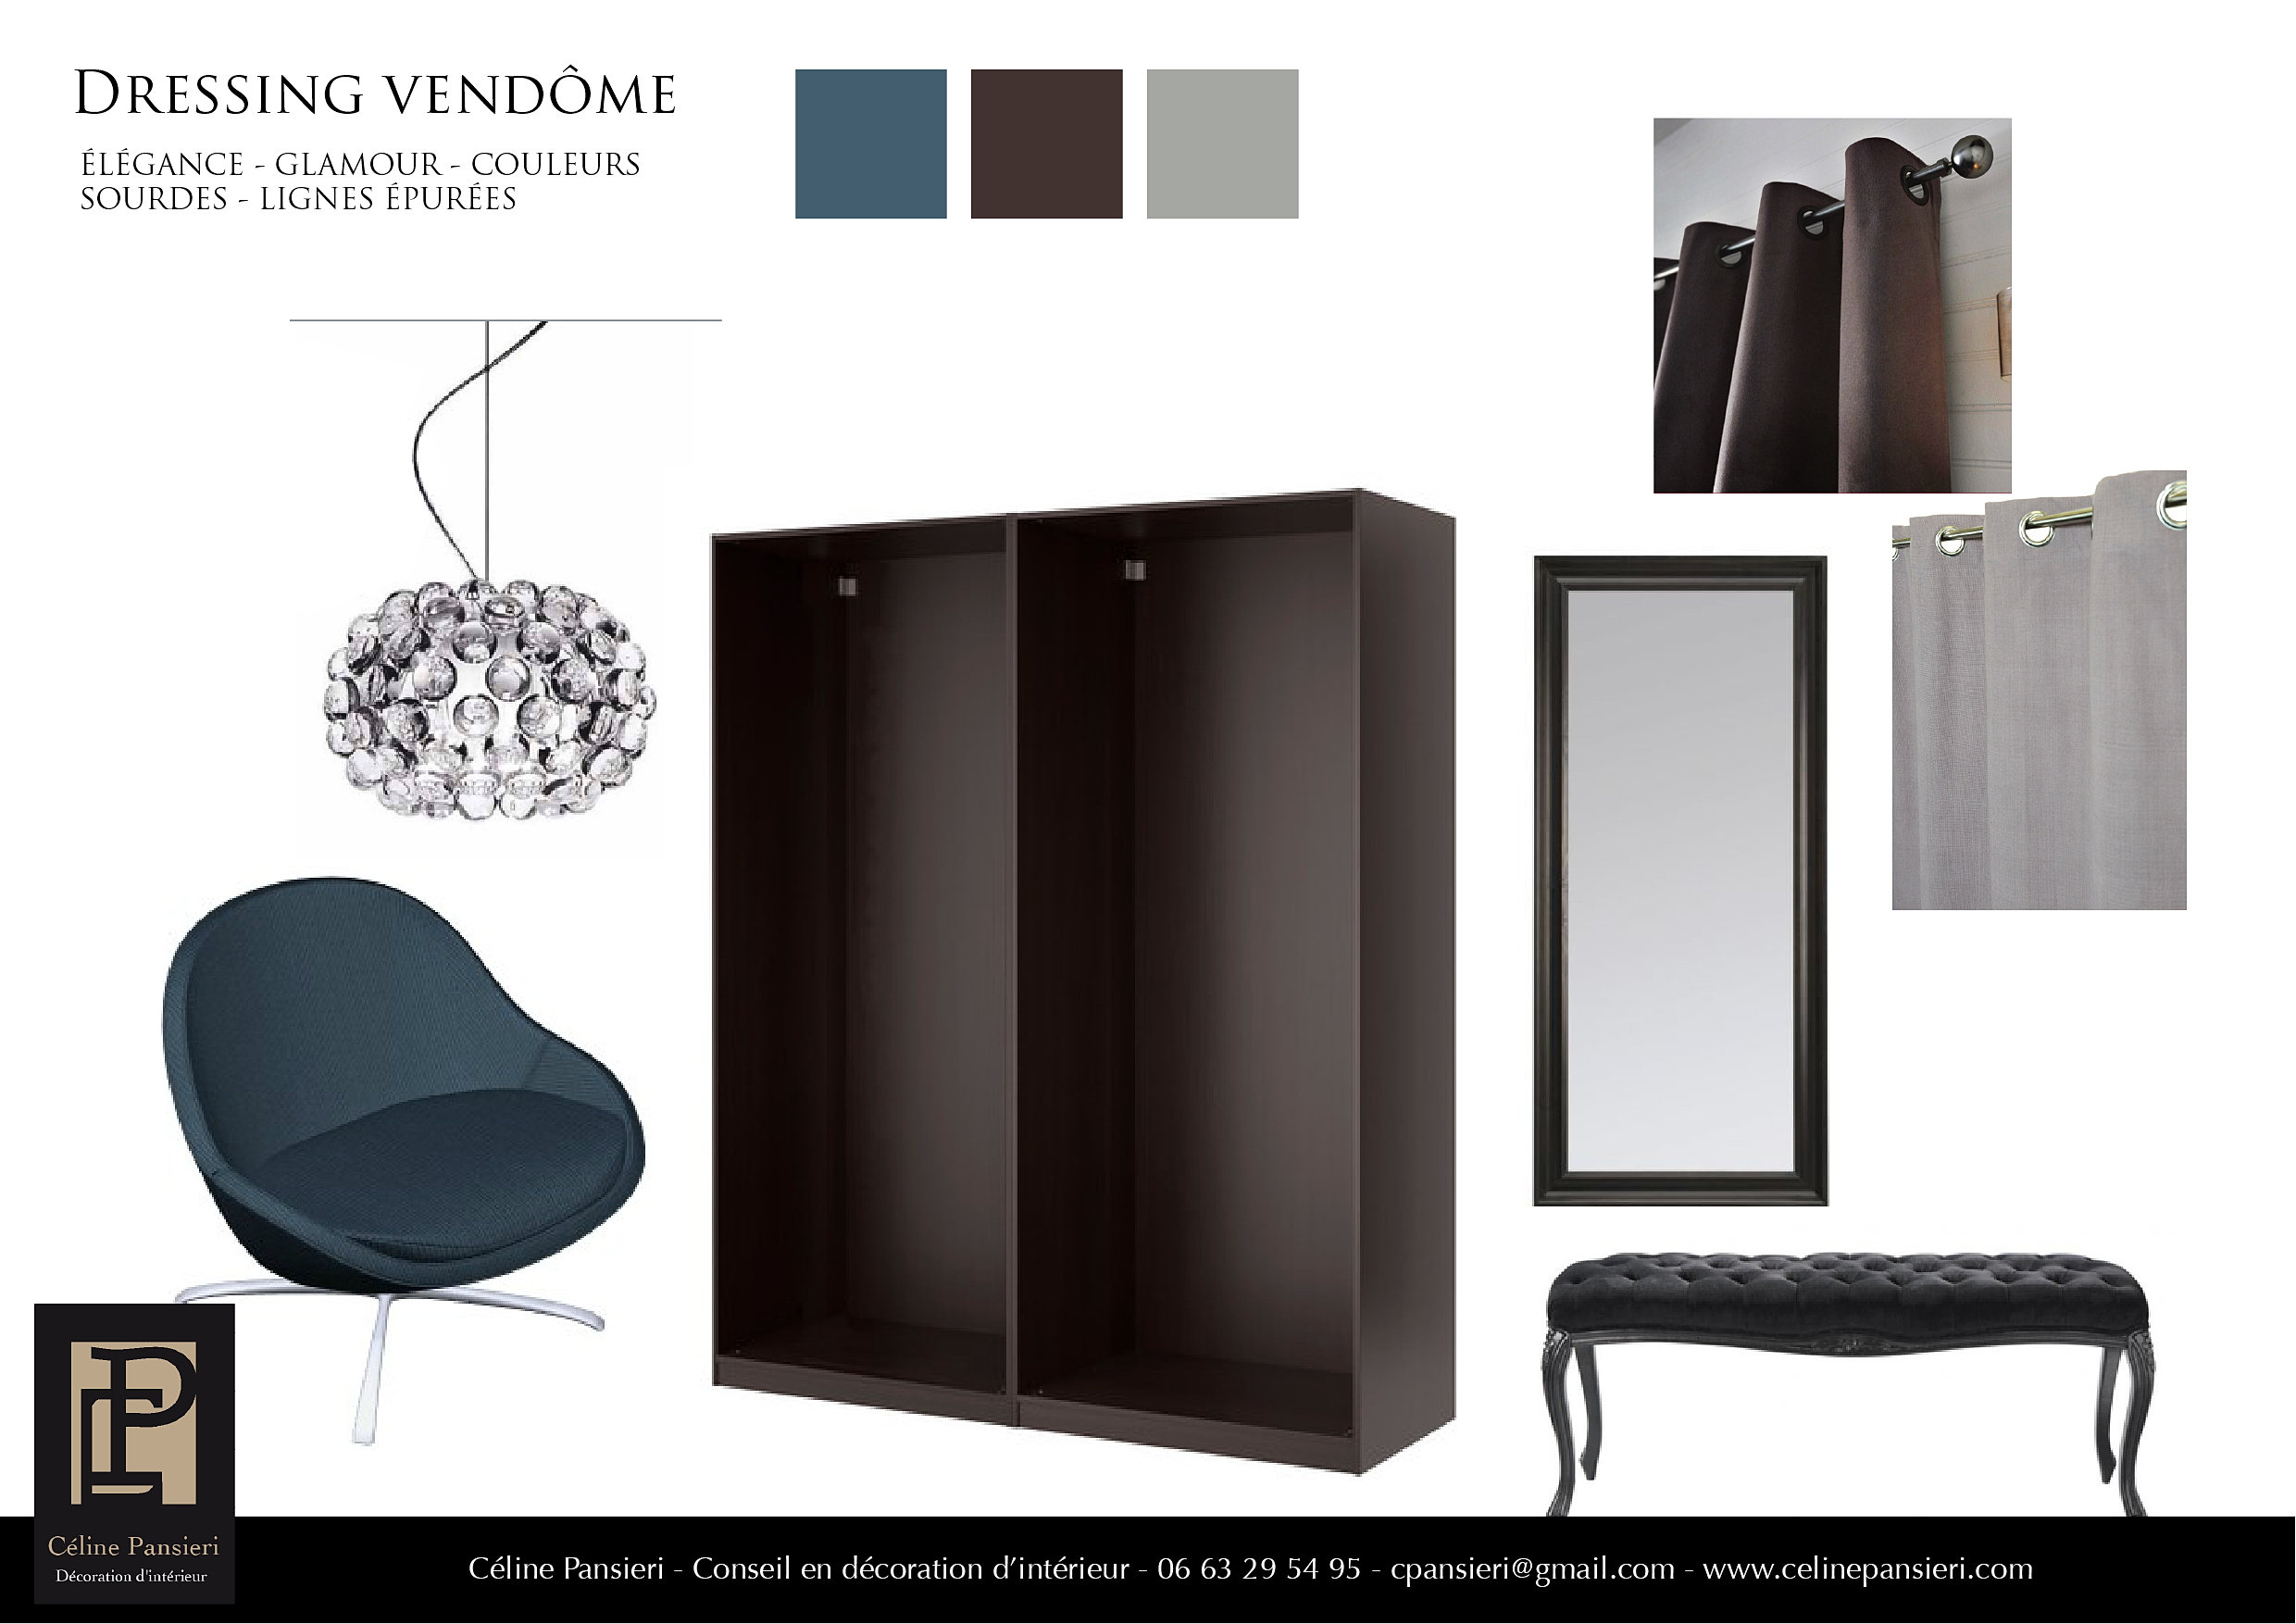 c line pansieri d coration int rieur ambiance dressing vend me. Black Bedroom Furniture Sets. Home Design Ideas